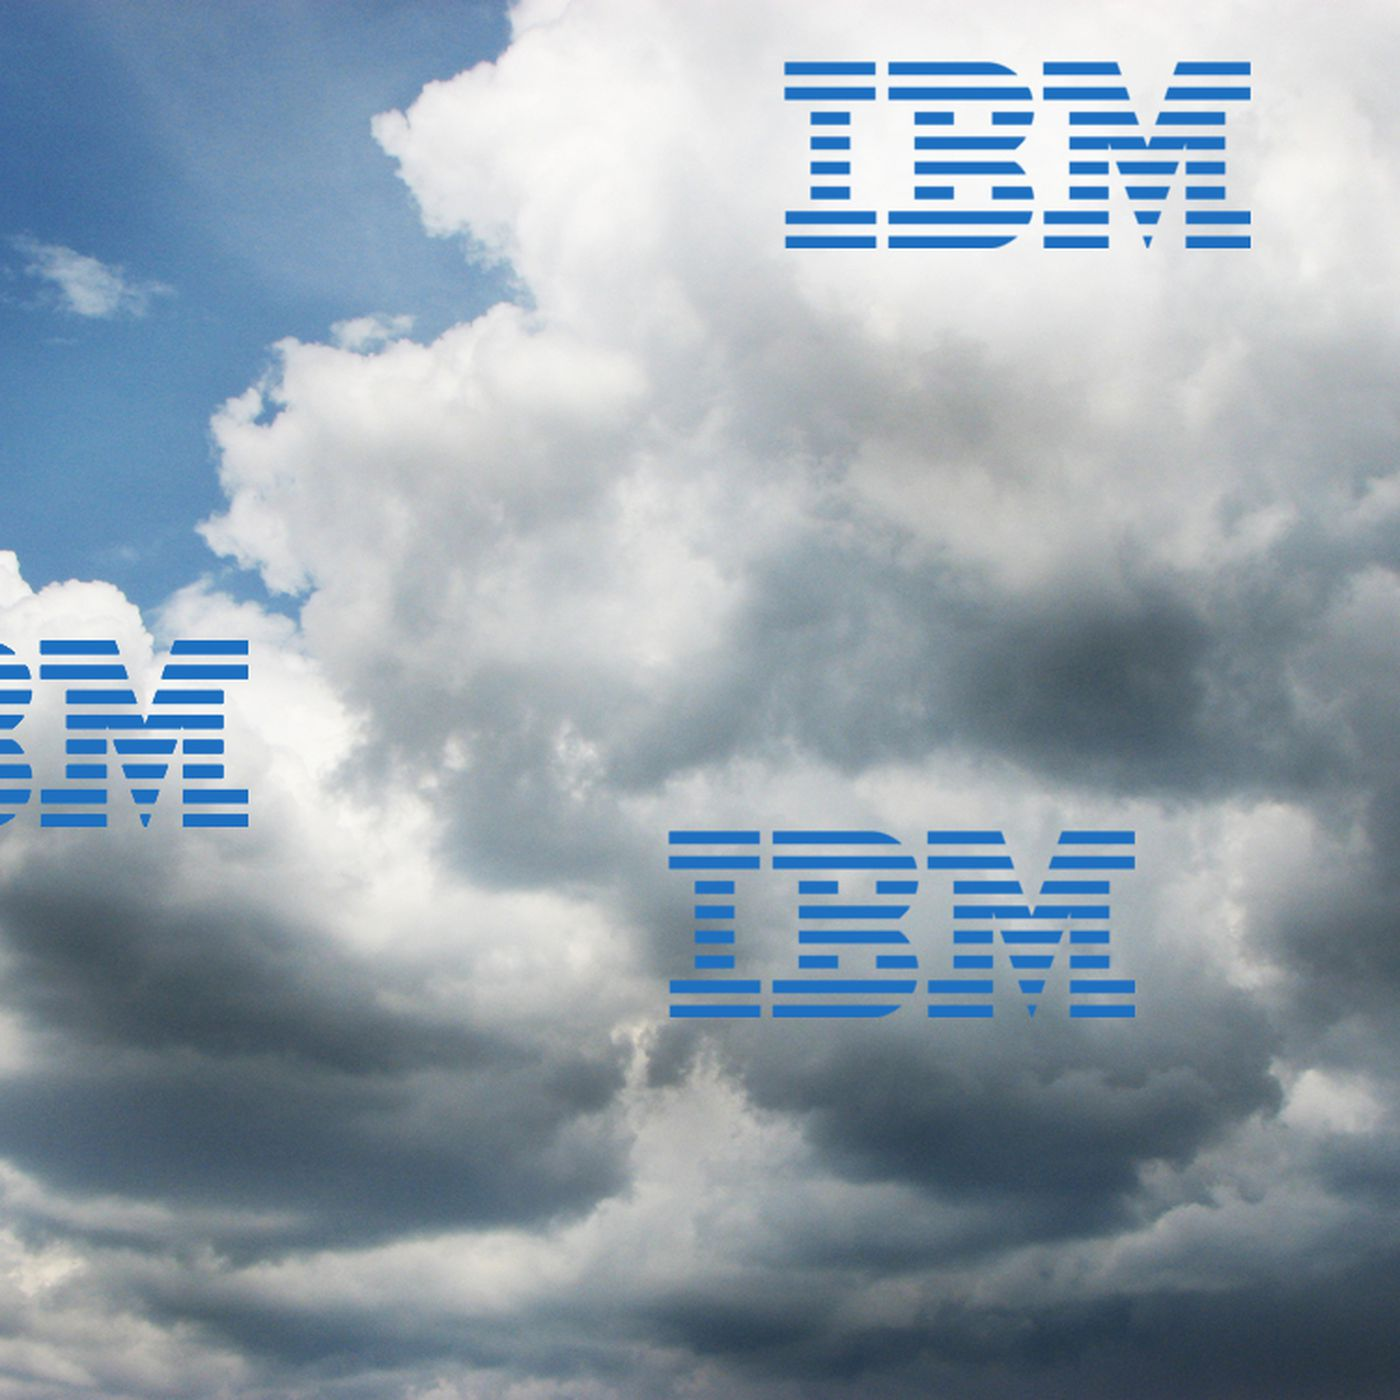 IBM to Acquire Cloud Consulting Firm Bluewolf for About $200